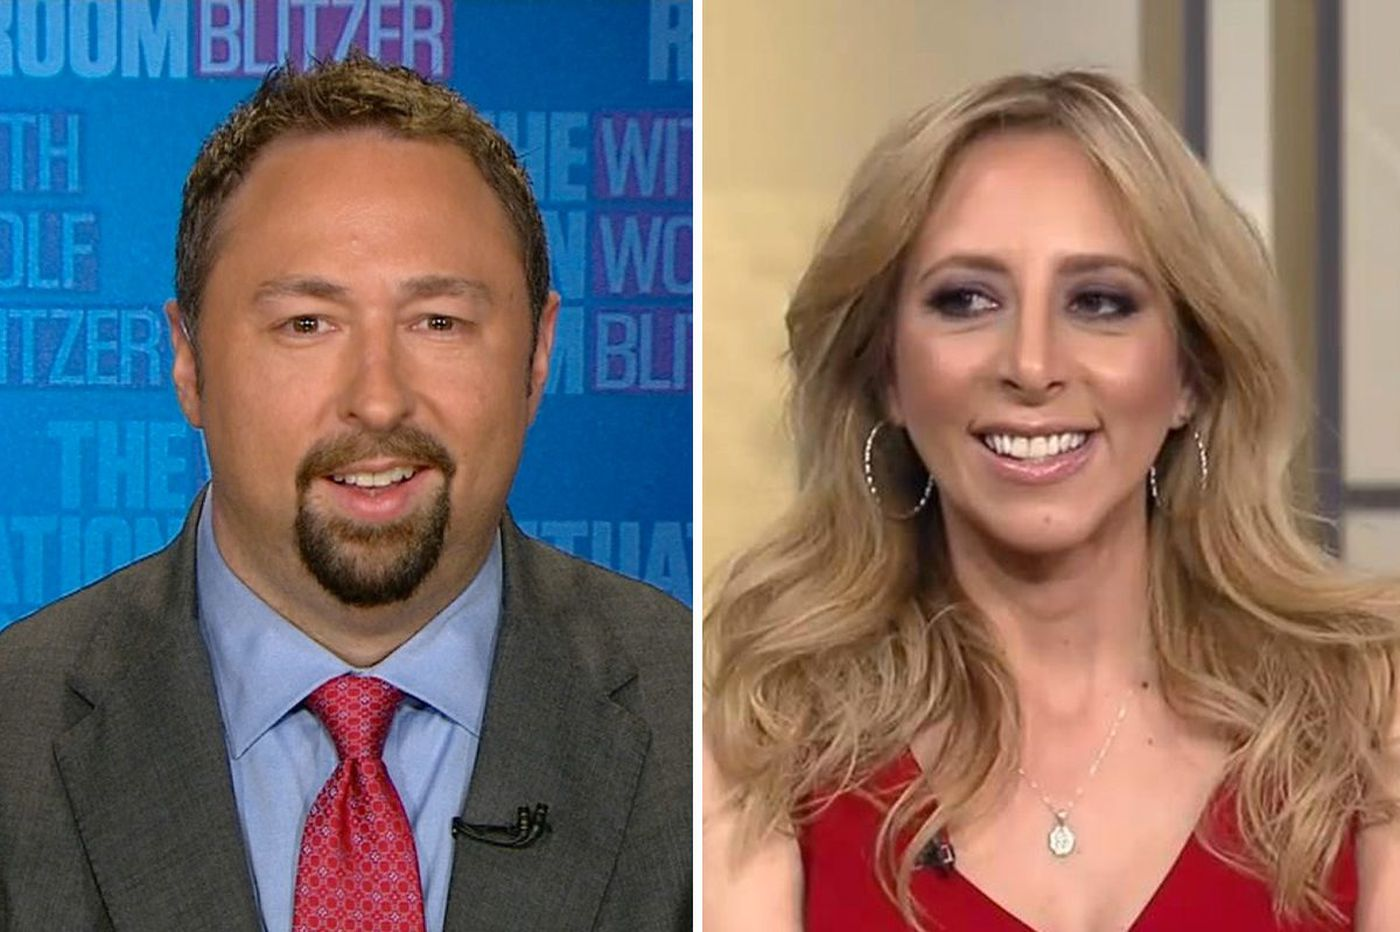 Ex-Trump staffer Jason Miller out at CNN after abortion allegation